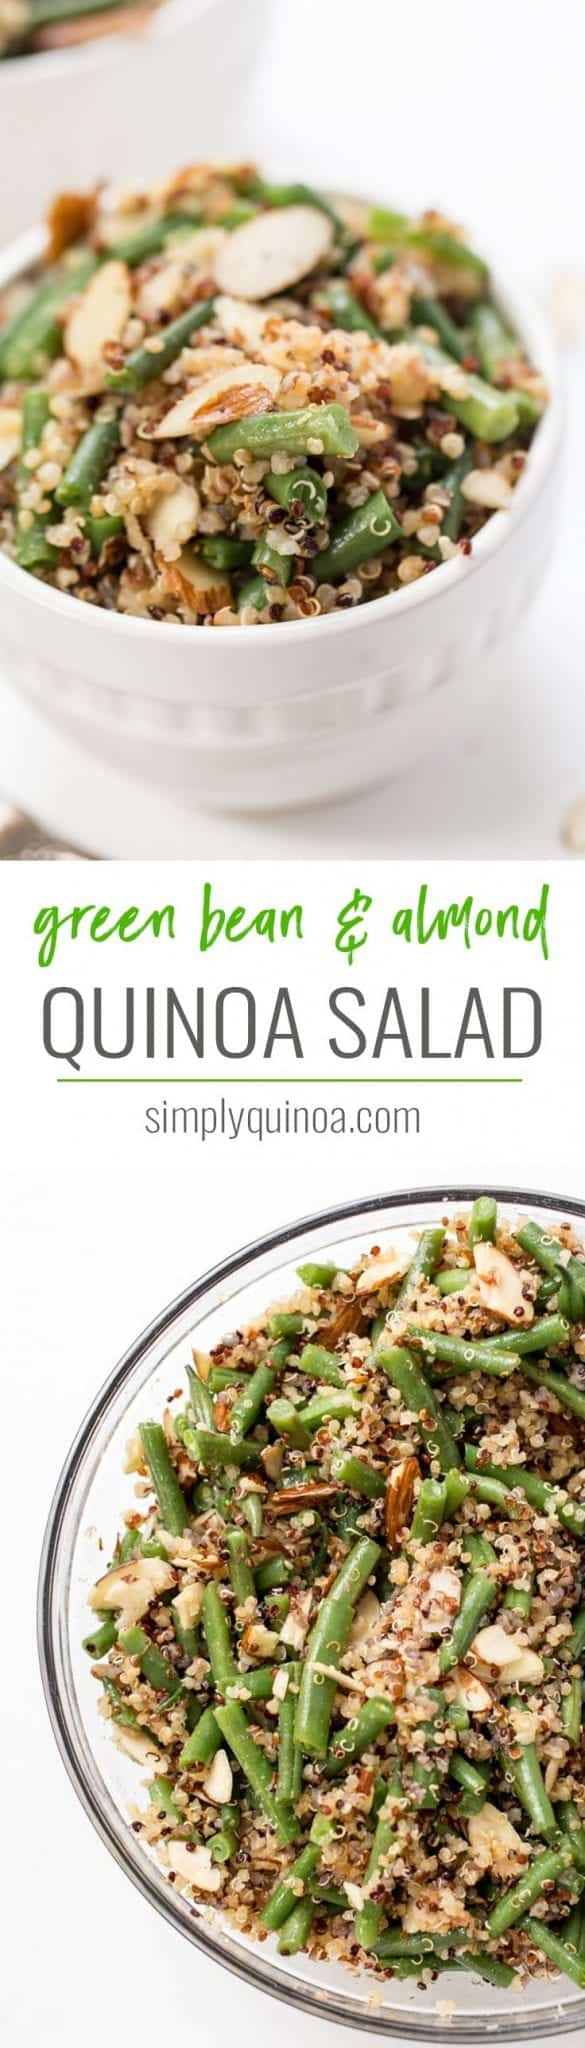 healthy green bean and almond quinoa salad